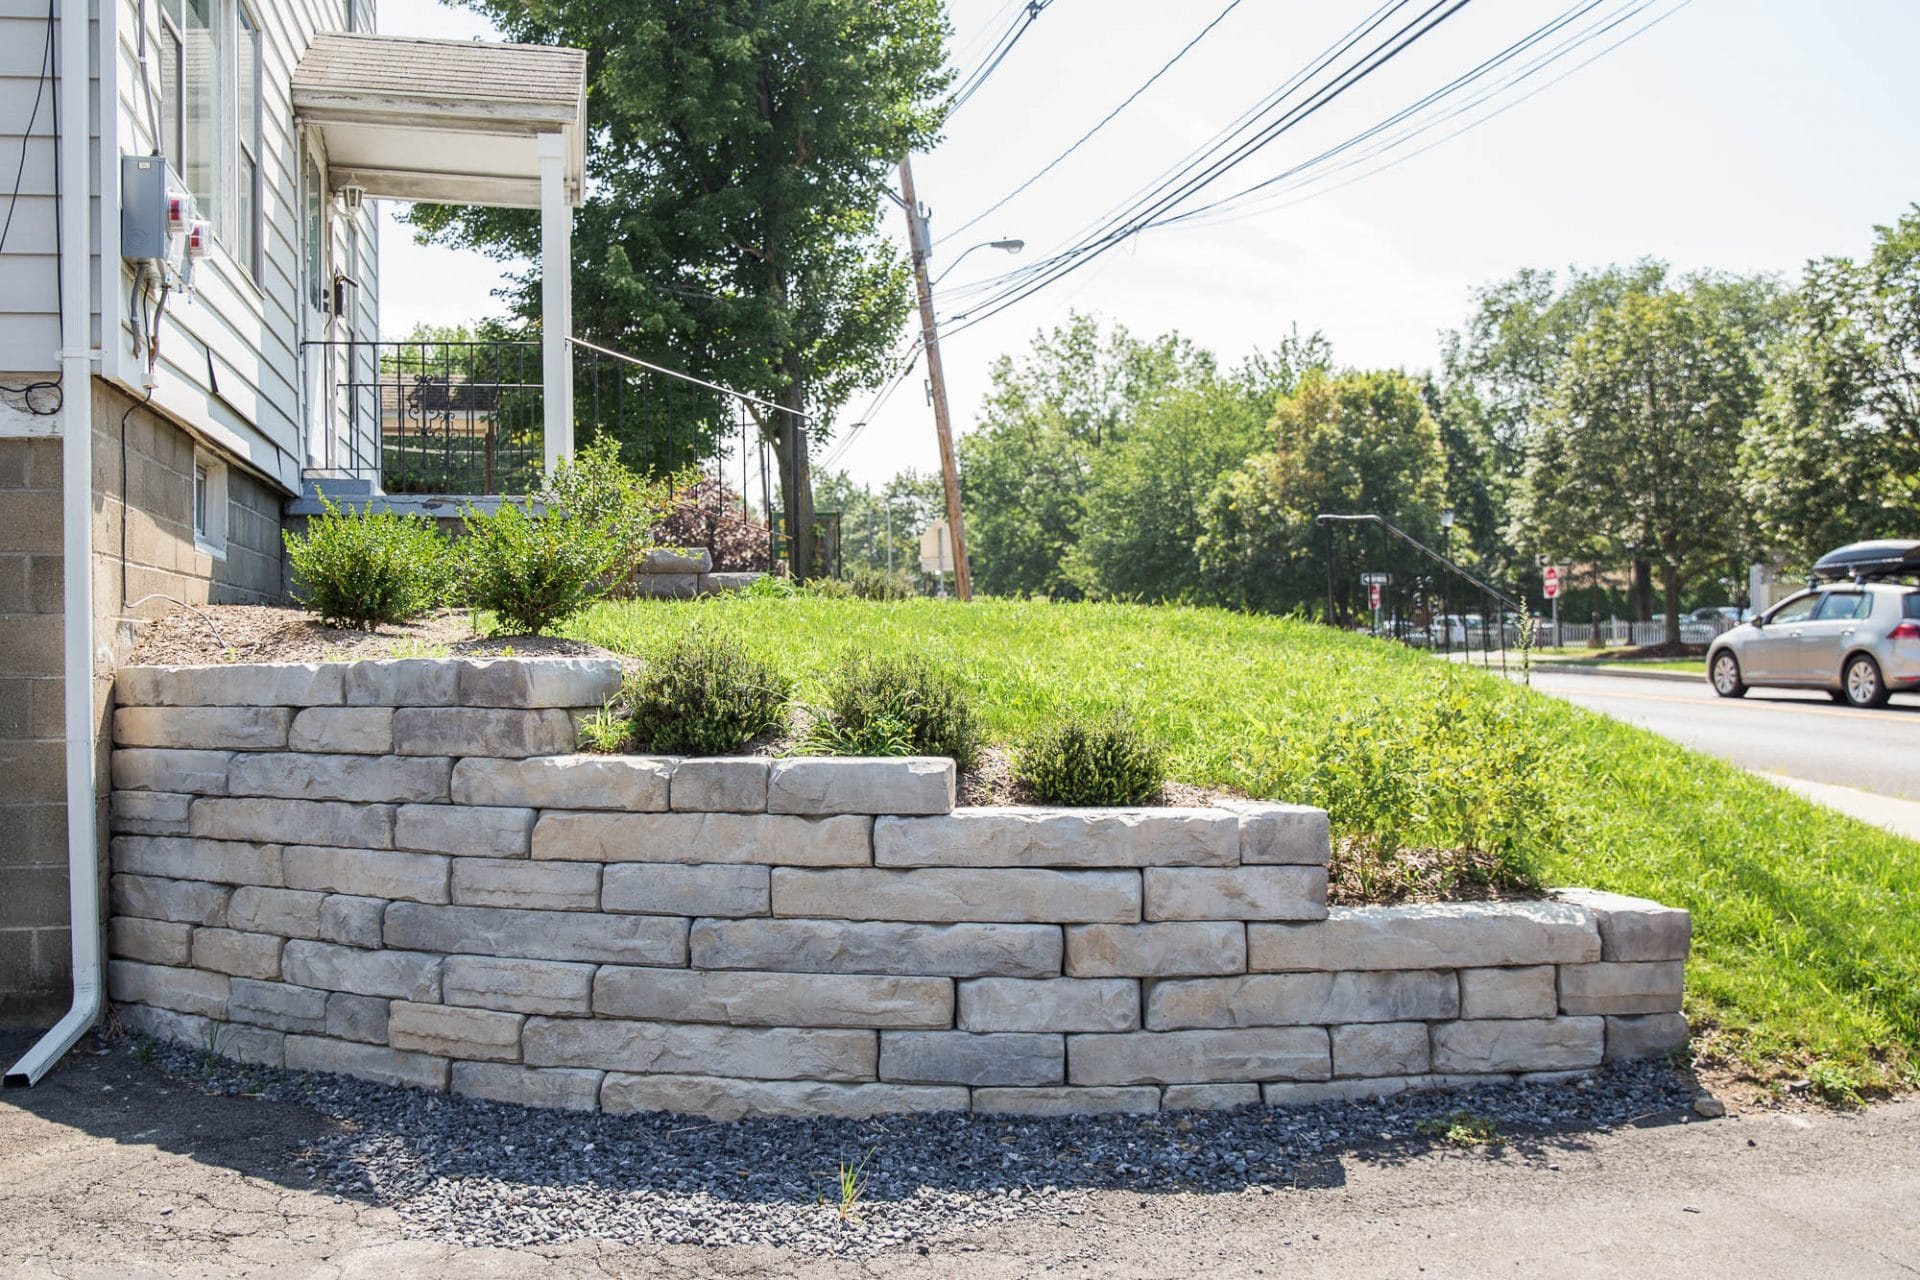 A curved retaining wall built from stone texture Kodah wall stone by Rosetta Hardscapes.